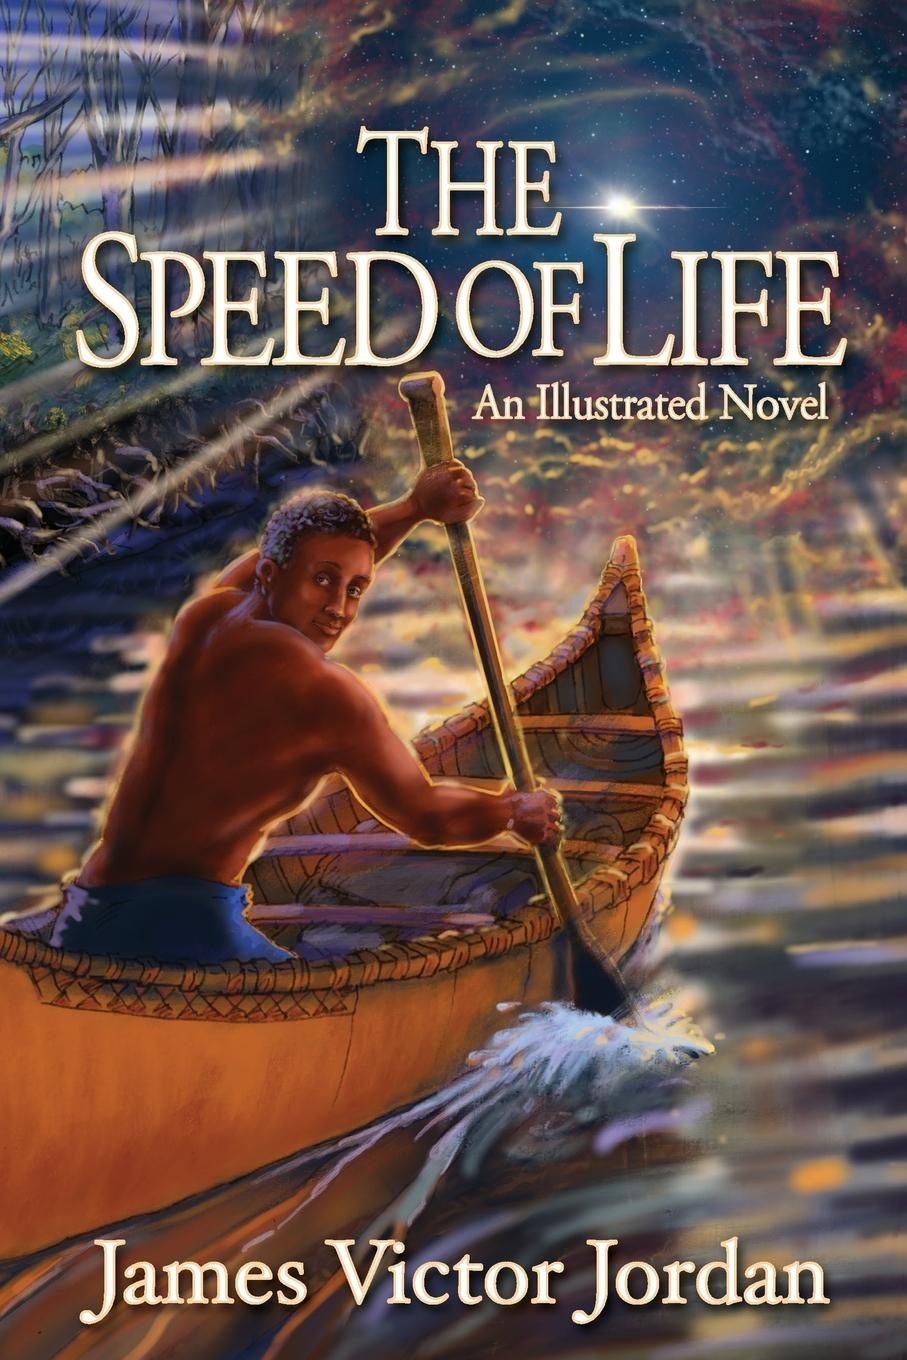 The Speed of Life. An Illustrated Novel